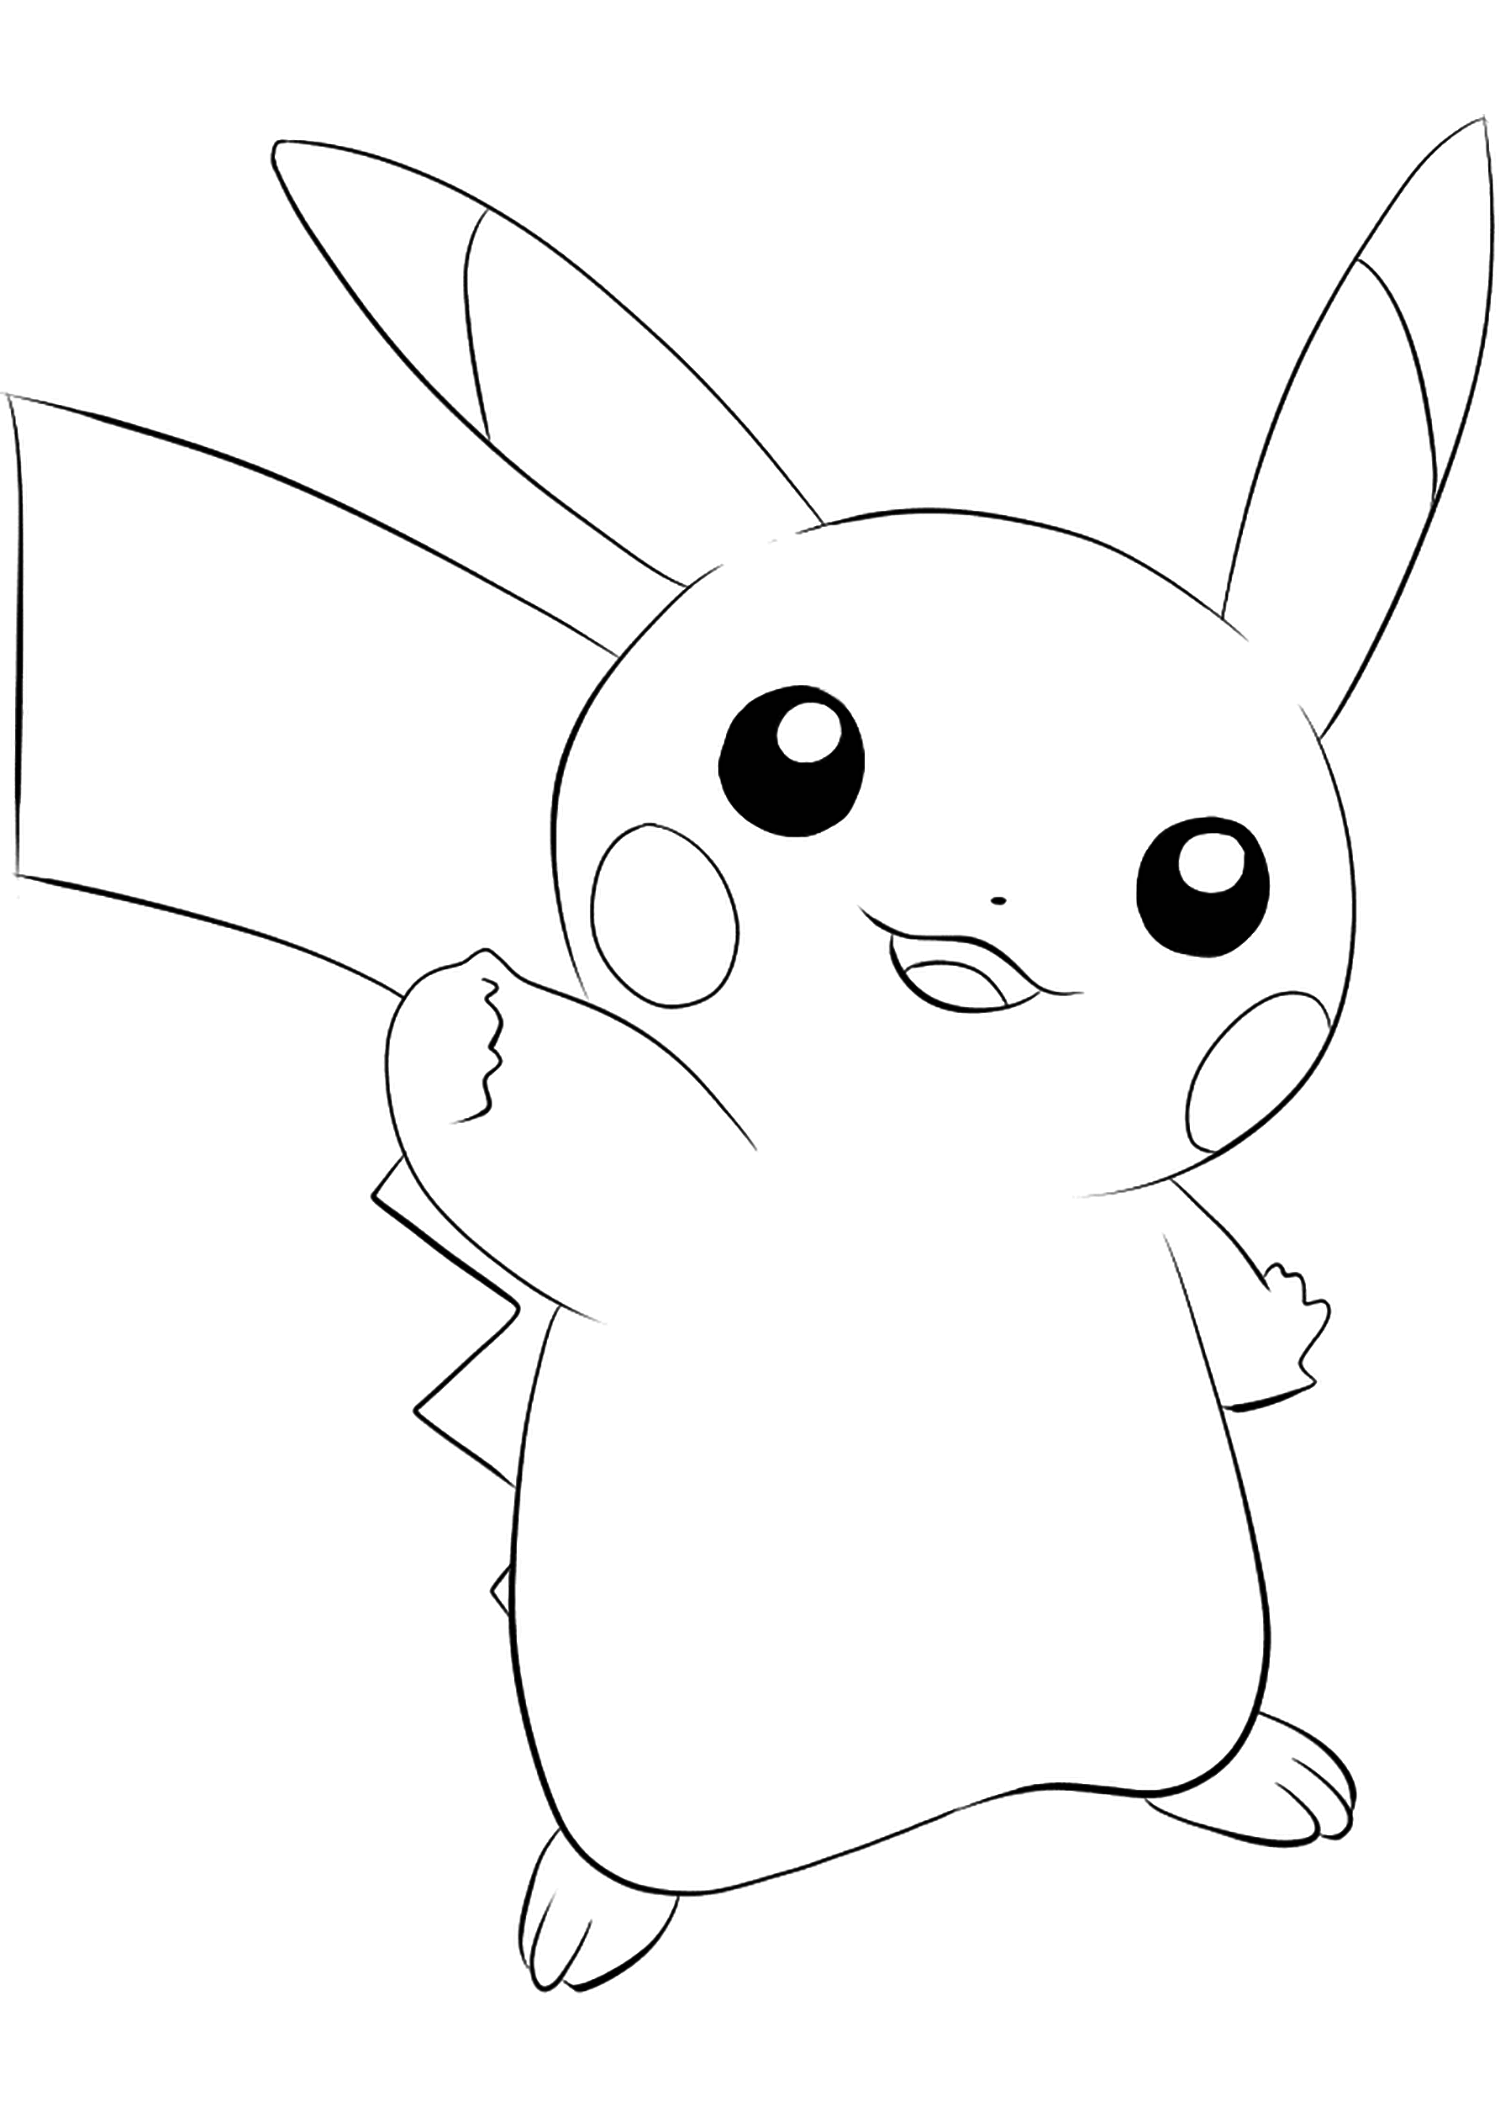 <b>Pikachu</b> (No.25) : Pokemon (Generation I)